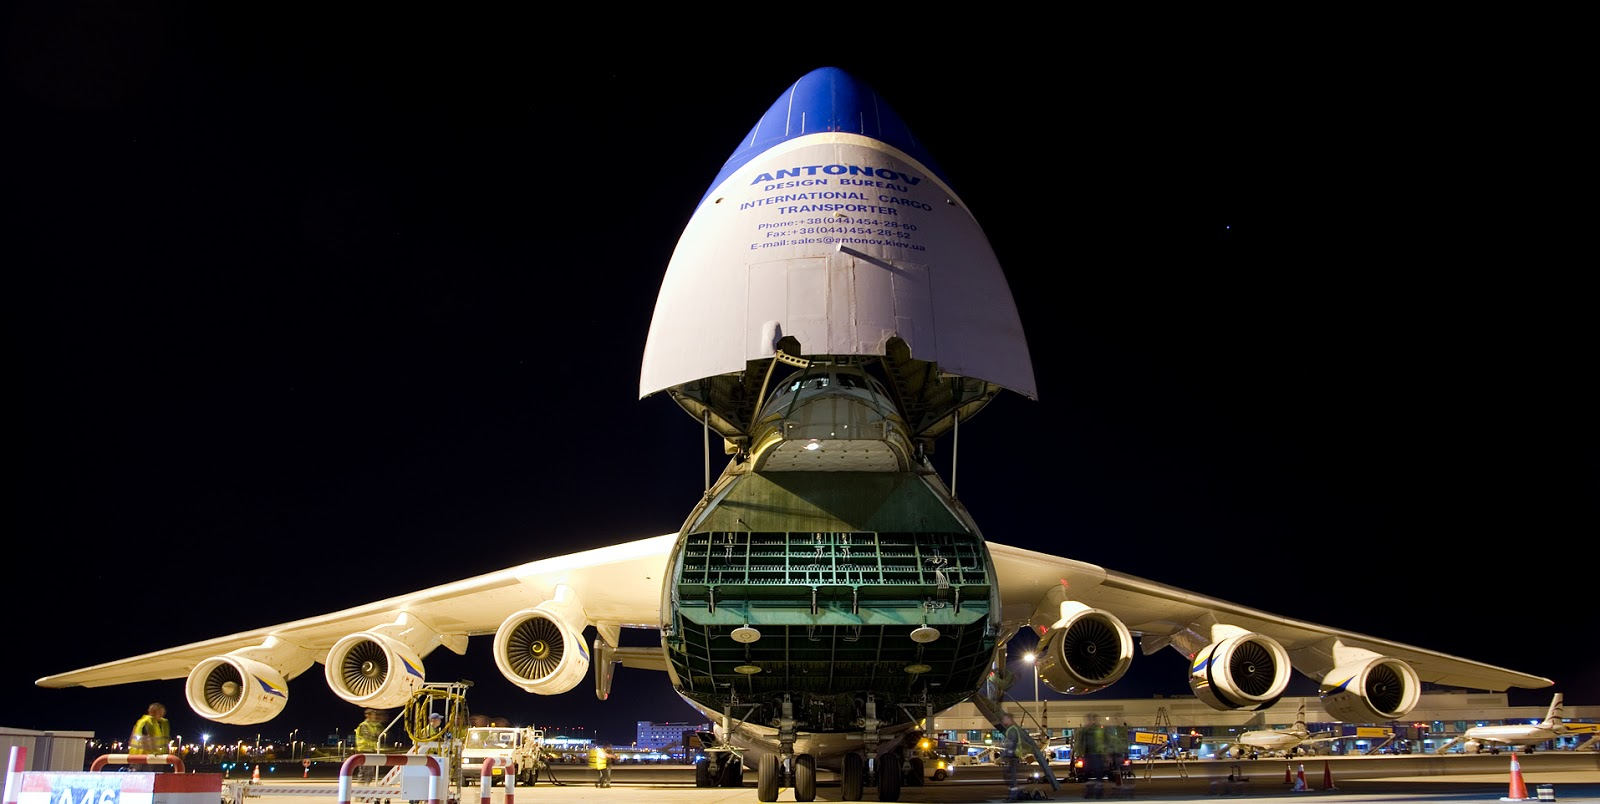 Antonov An-225 Nose Retracted Open While Loading-Unloading